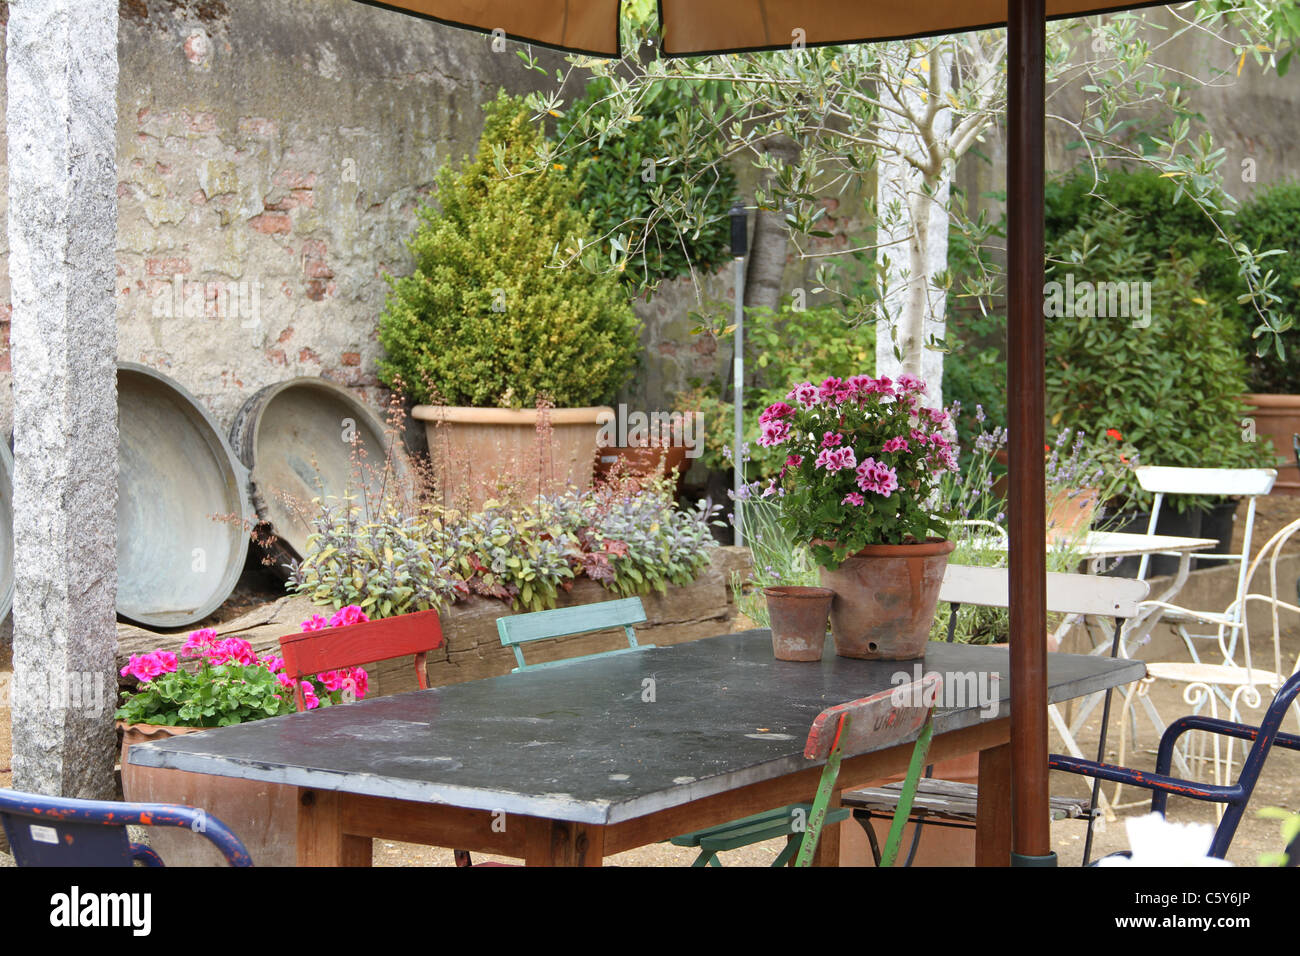 Tuscan table setting & Tuscan table setting Stock Photo: 38091950 - Alamy